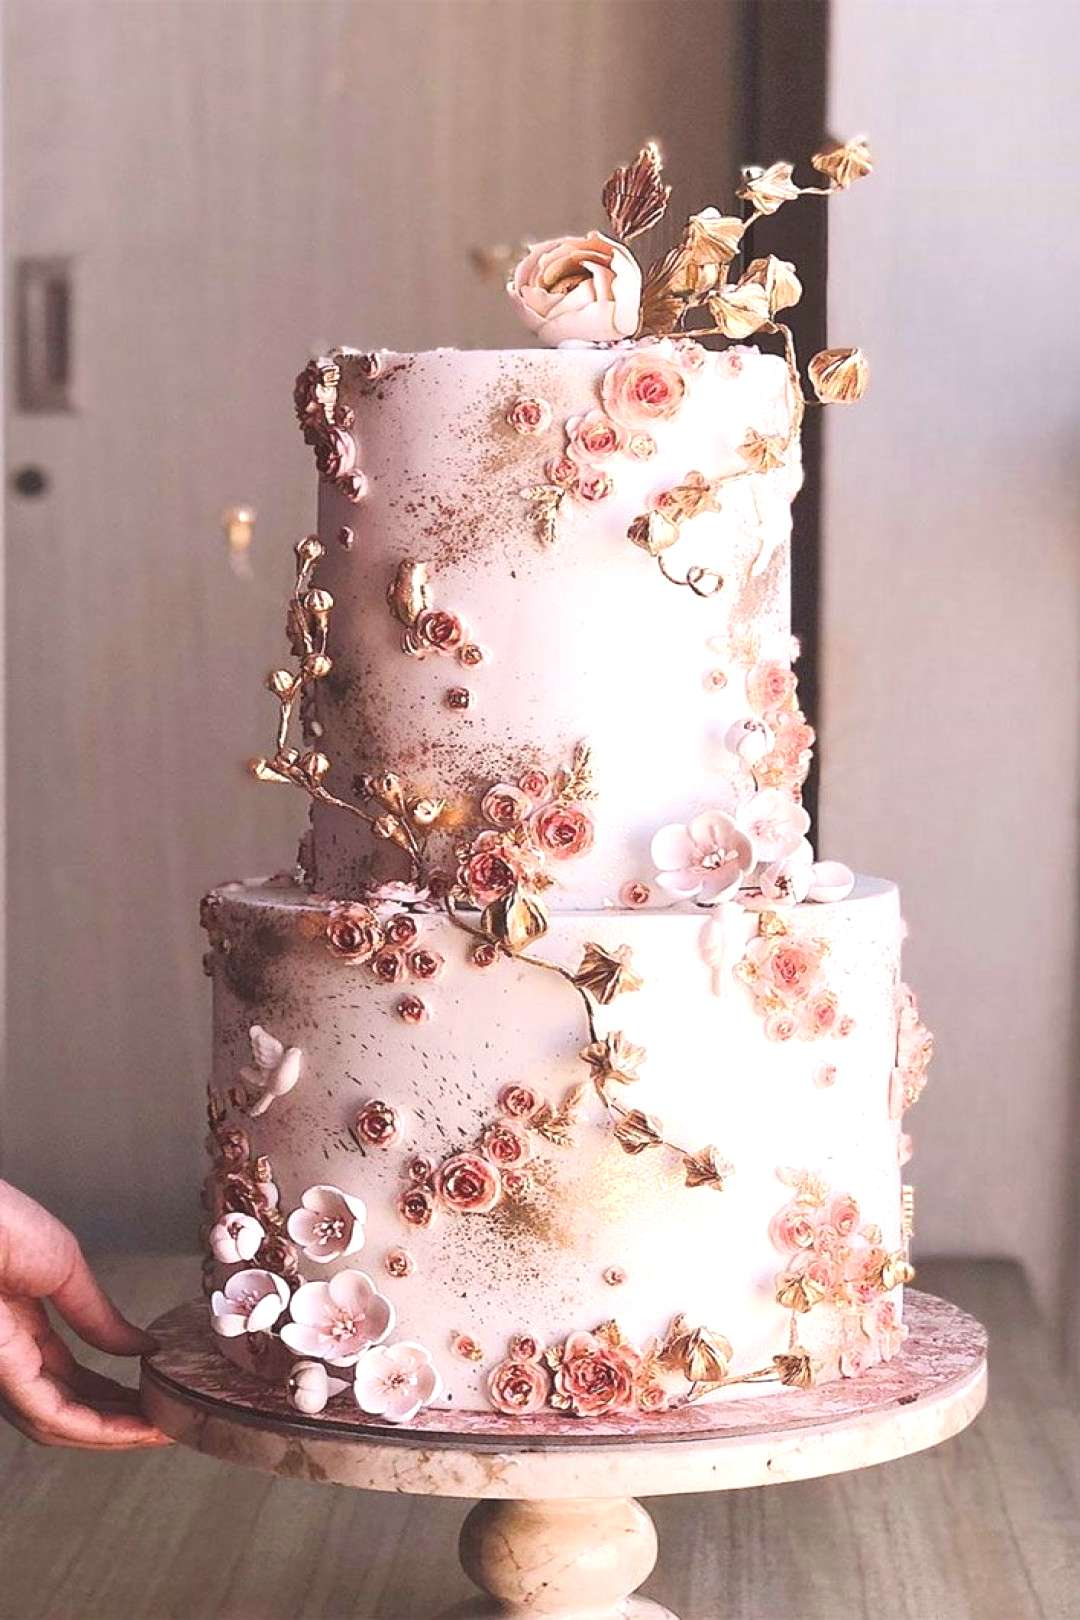 The most beautiful wedding cakes that will have your wedding guests attention The most beautiful w